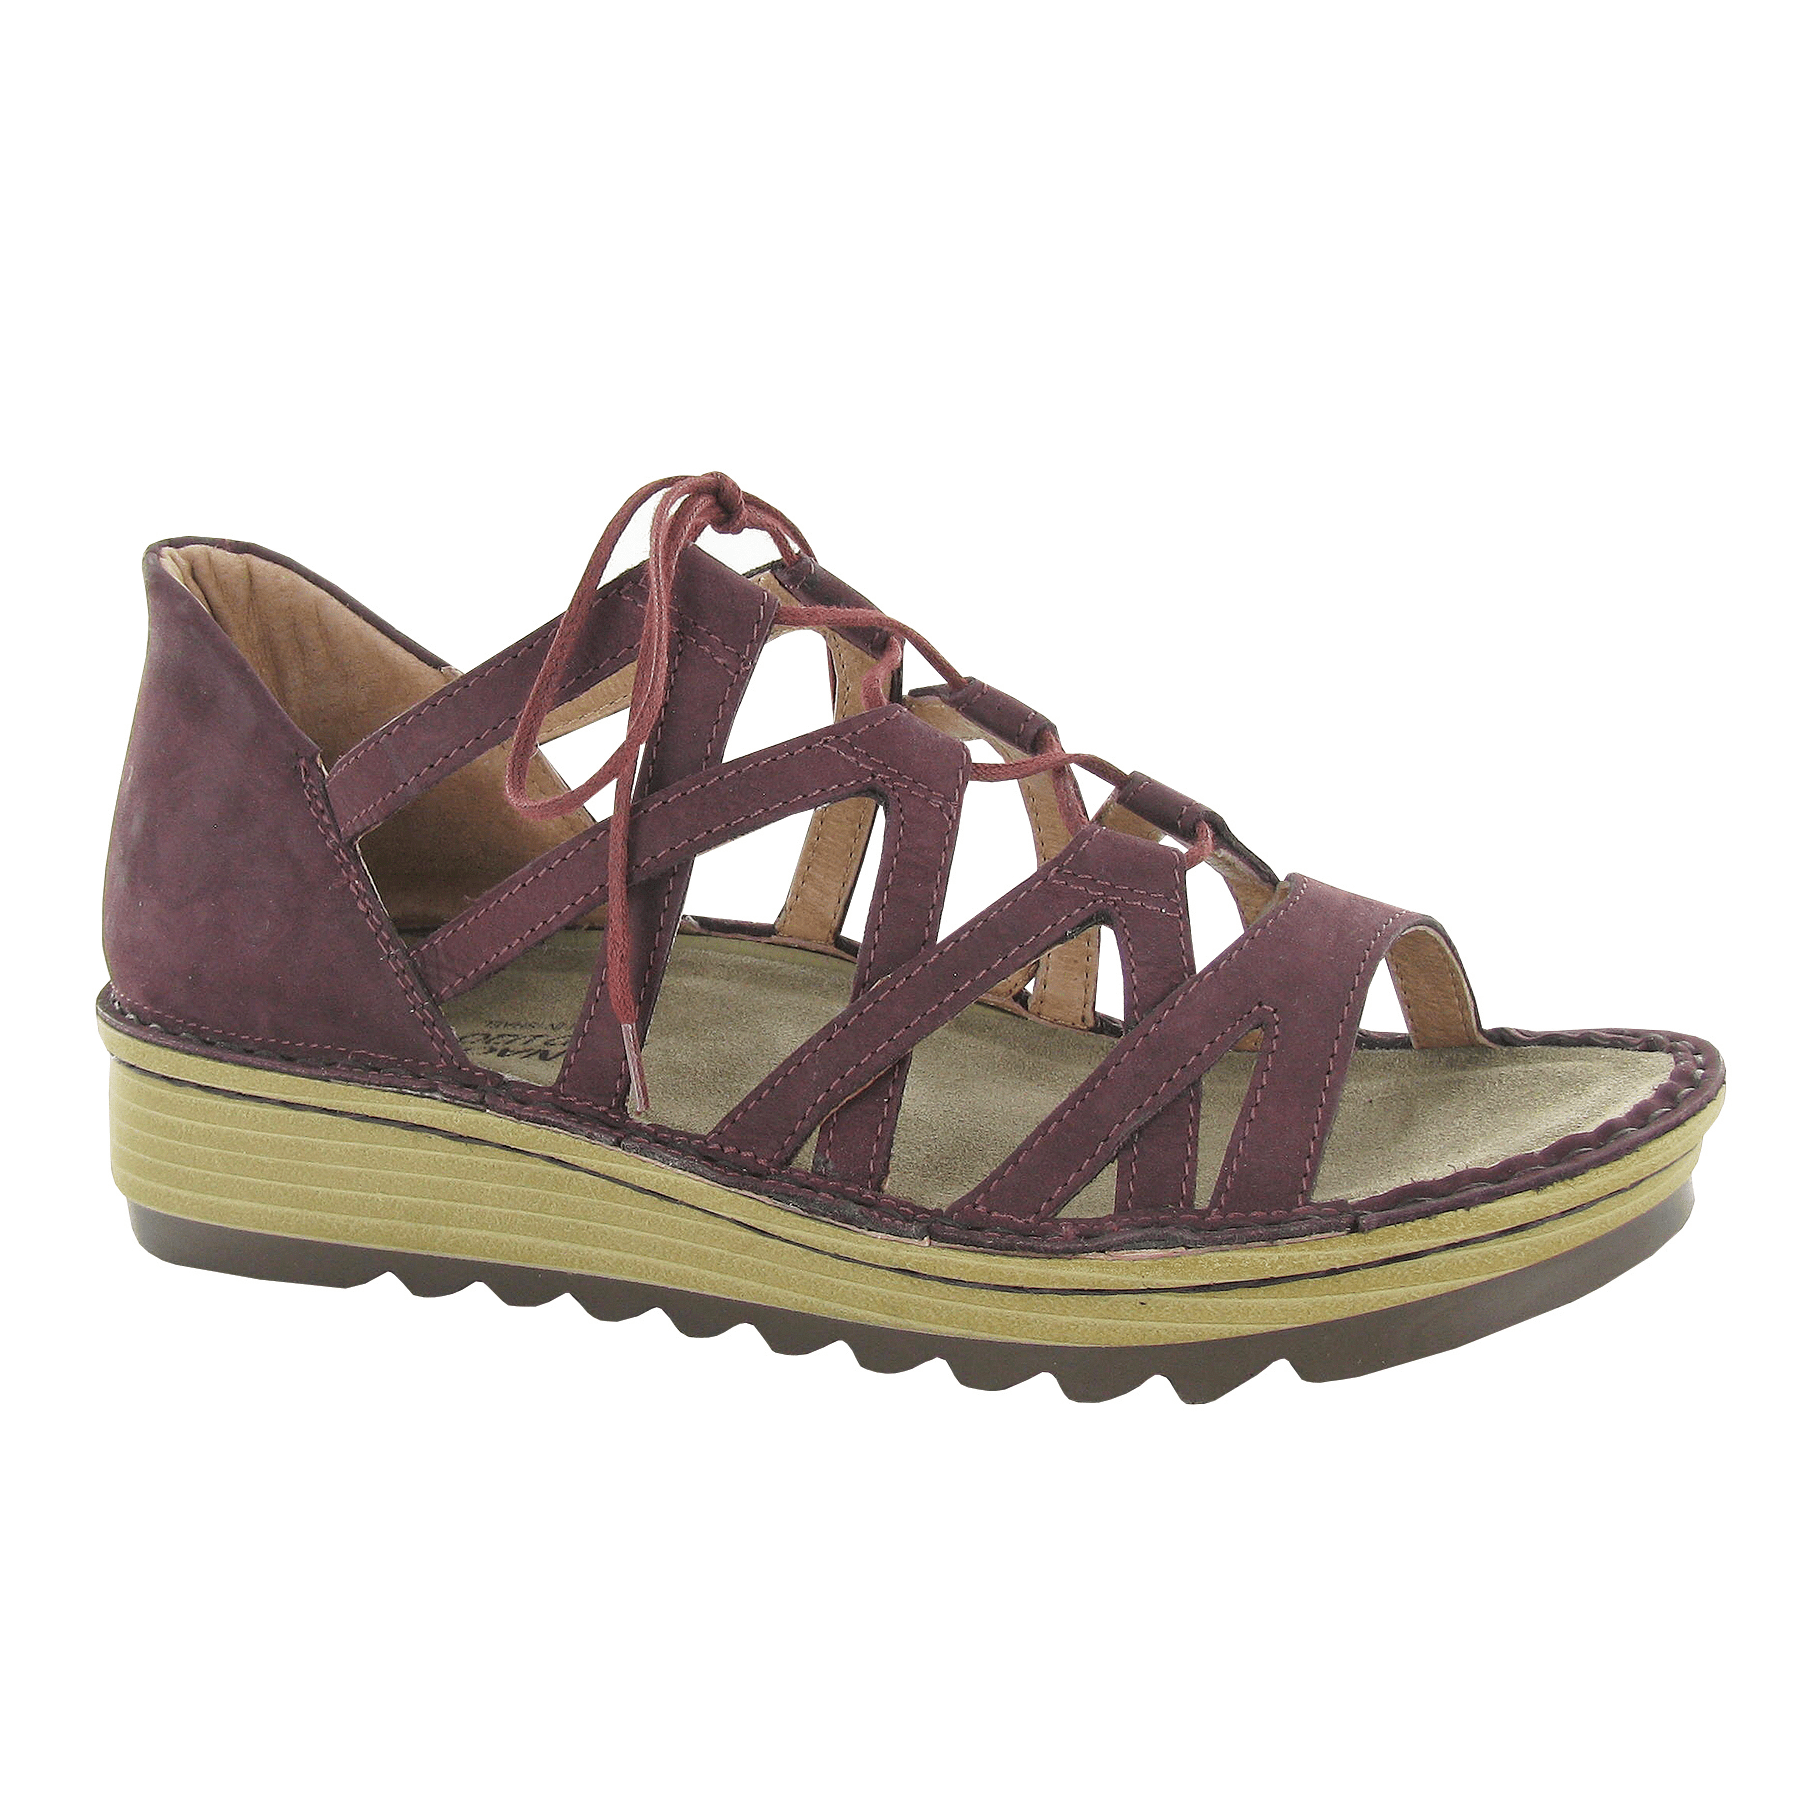 Naot Yarrow Women's Leather Cutout Gilly Wedge Gladiator Sandal Shoe